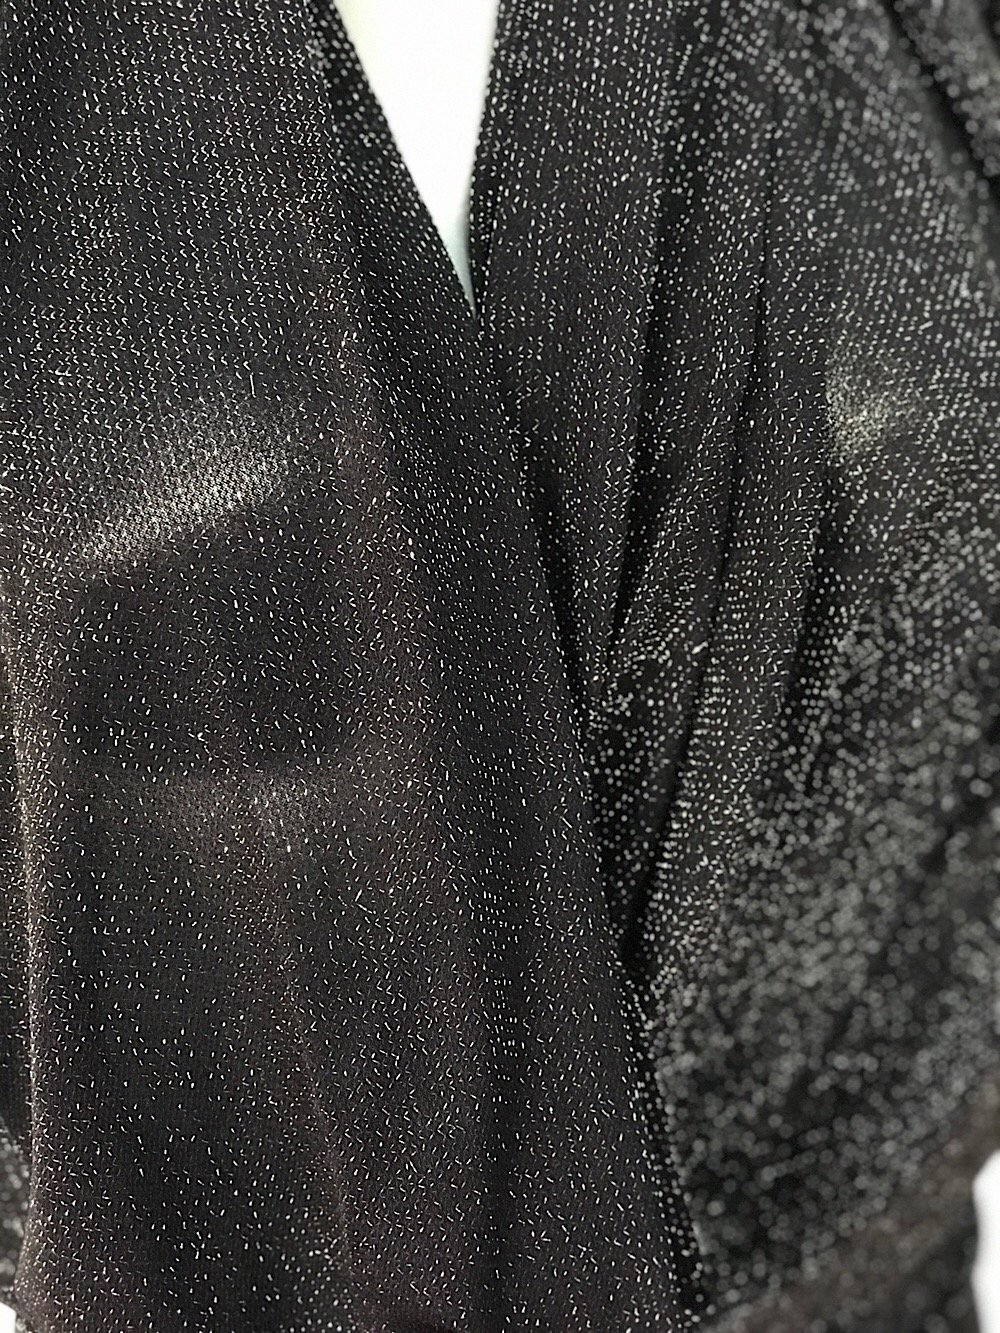 Silver on black metallic thread lurex knitted jersey fabric 150cm wide 2 way stretch bridal clothing Festive season Christmas decotation